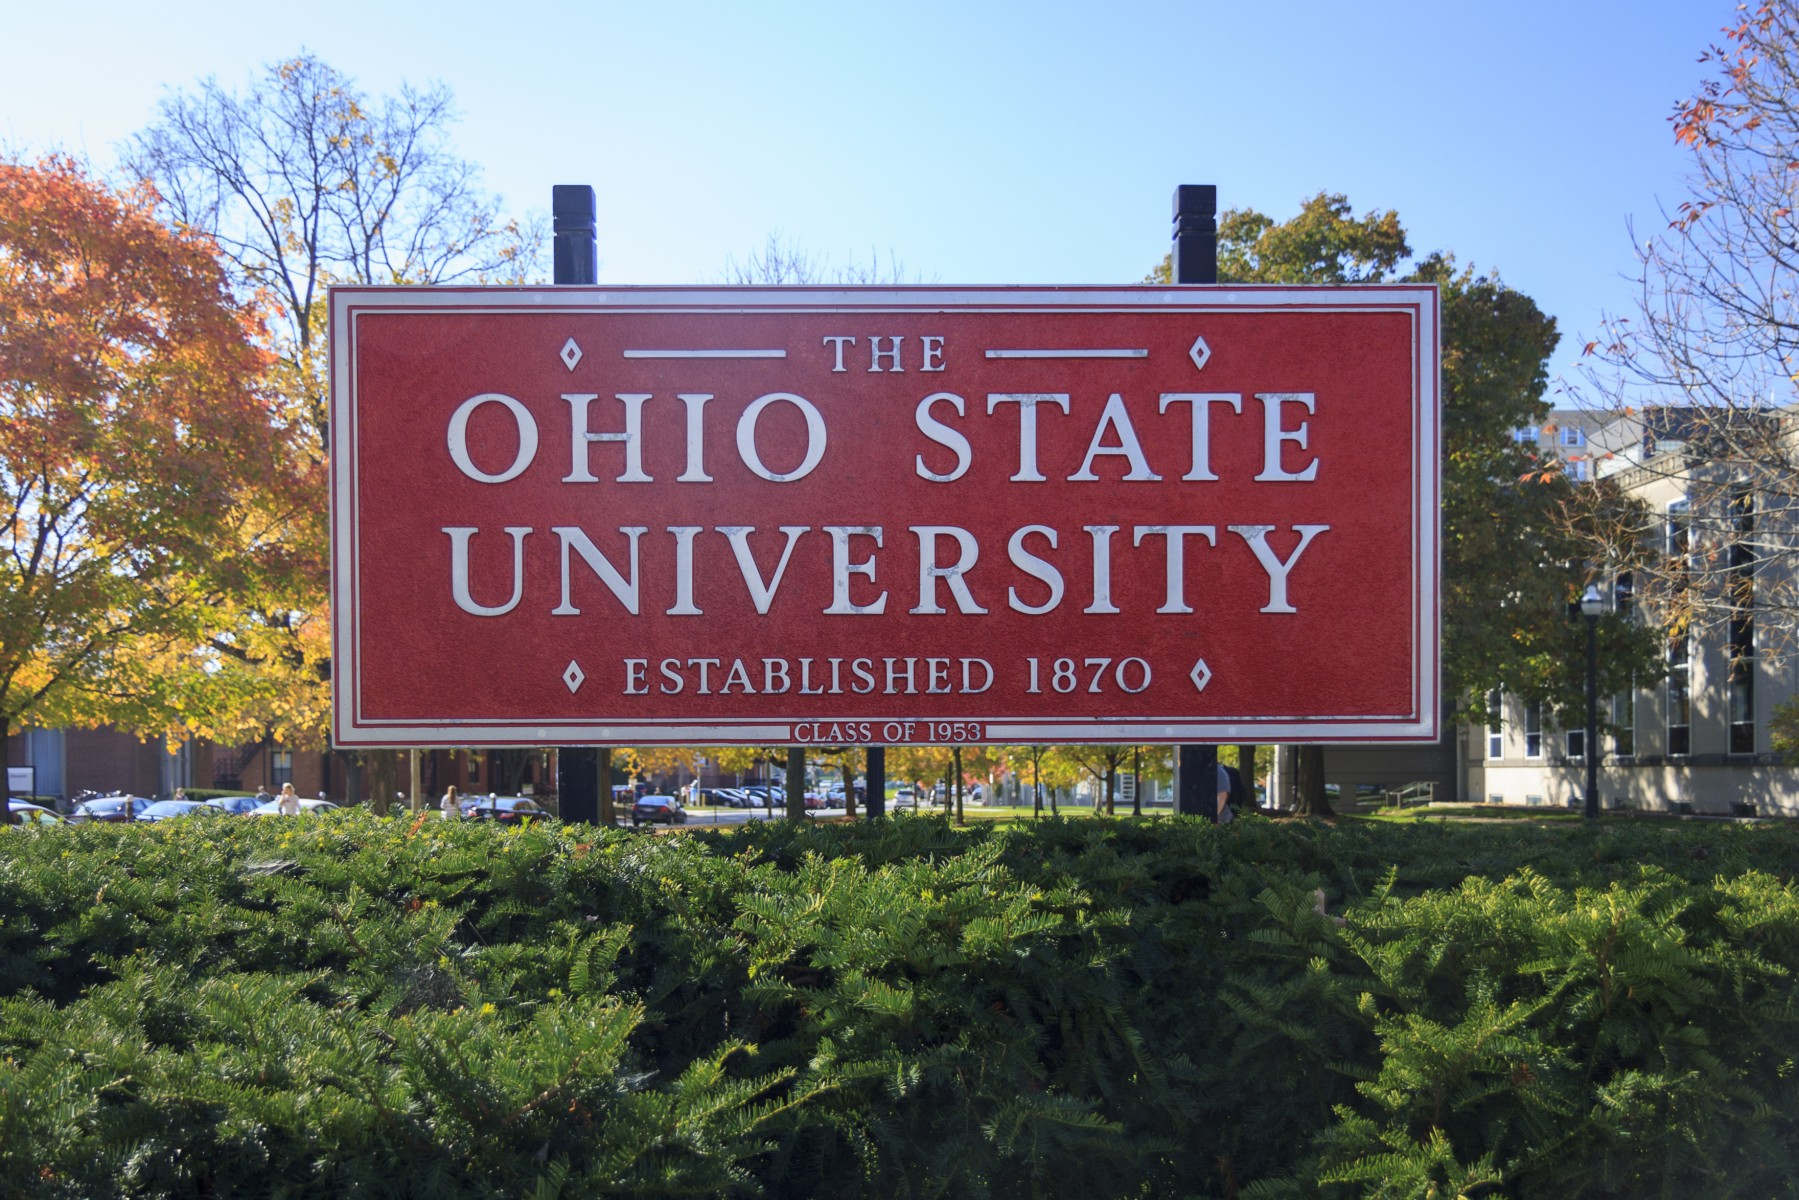 Ohio State University, Things You Should Know About It